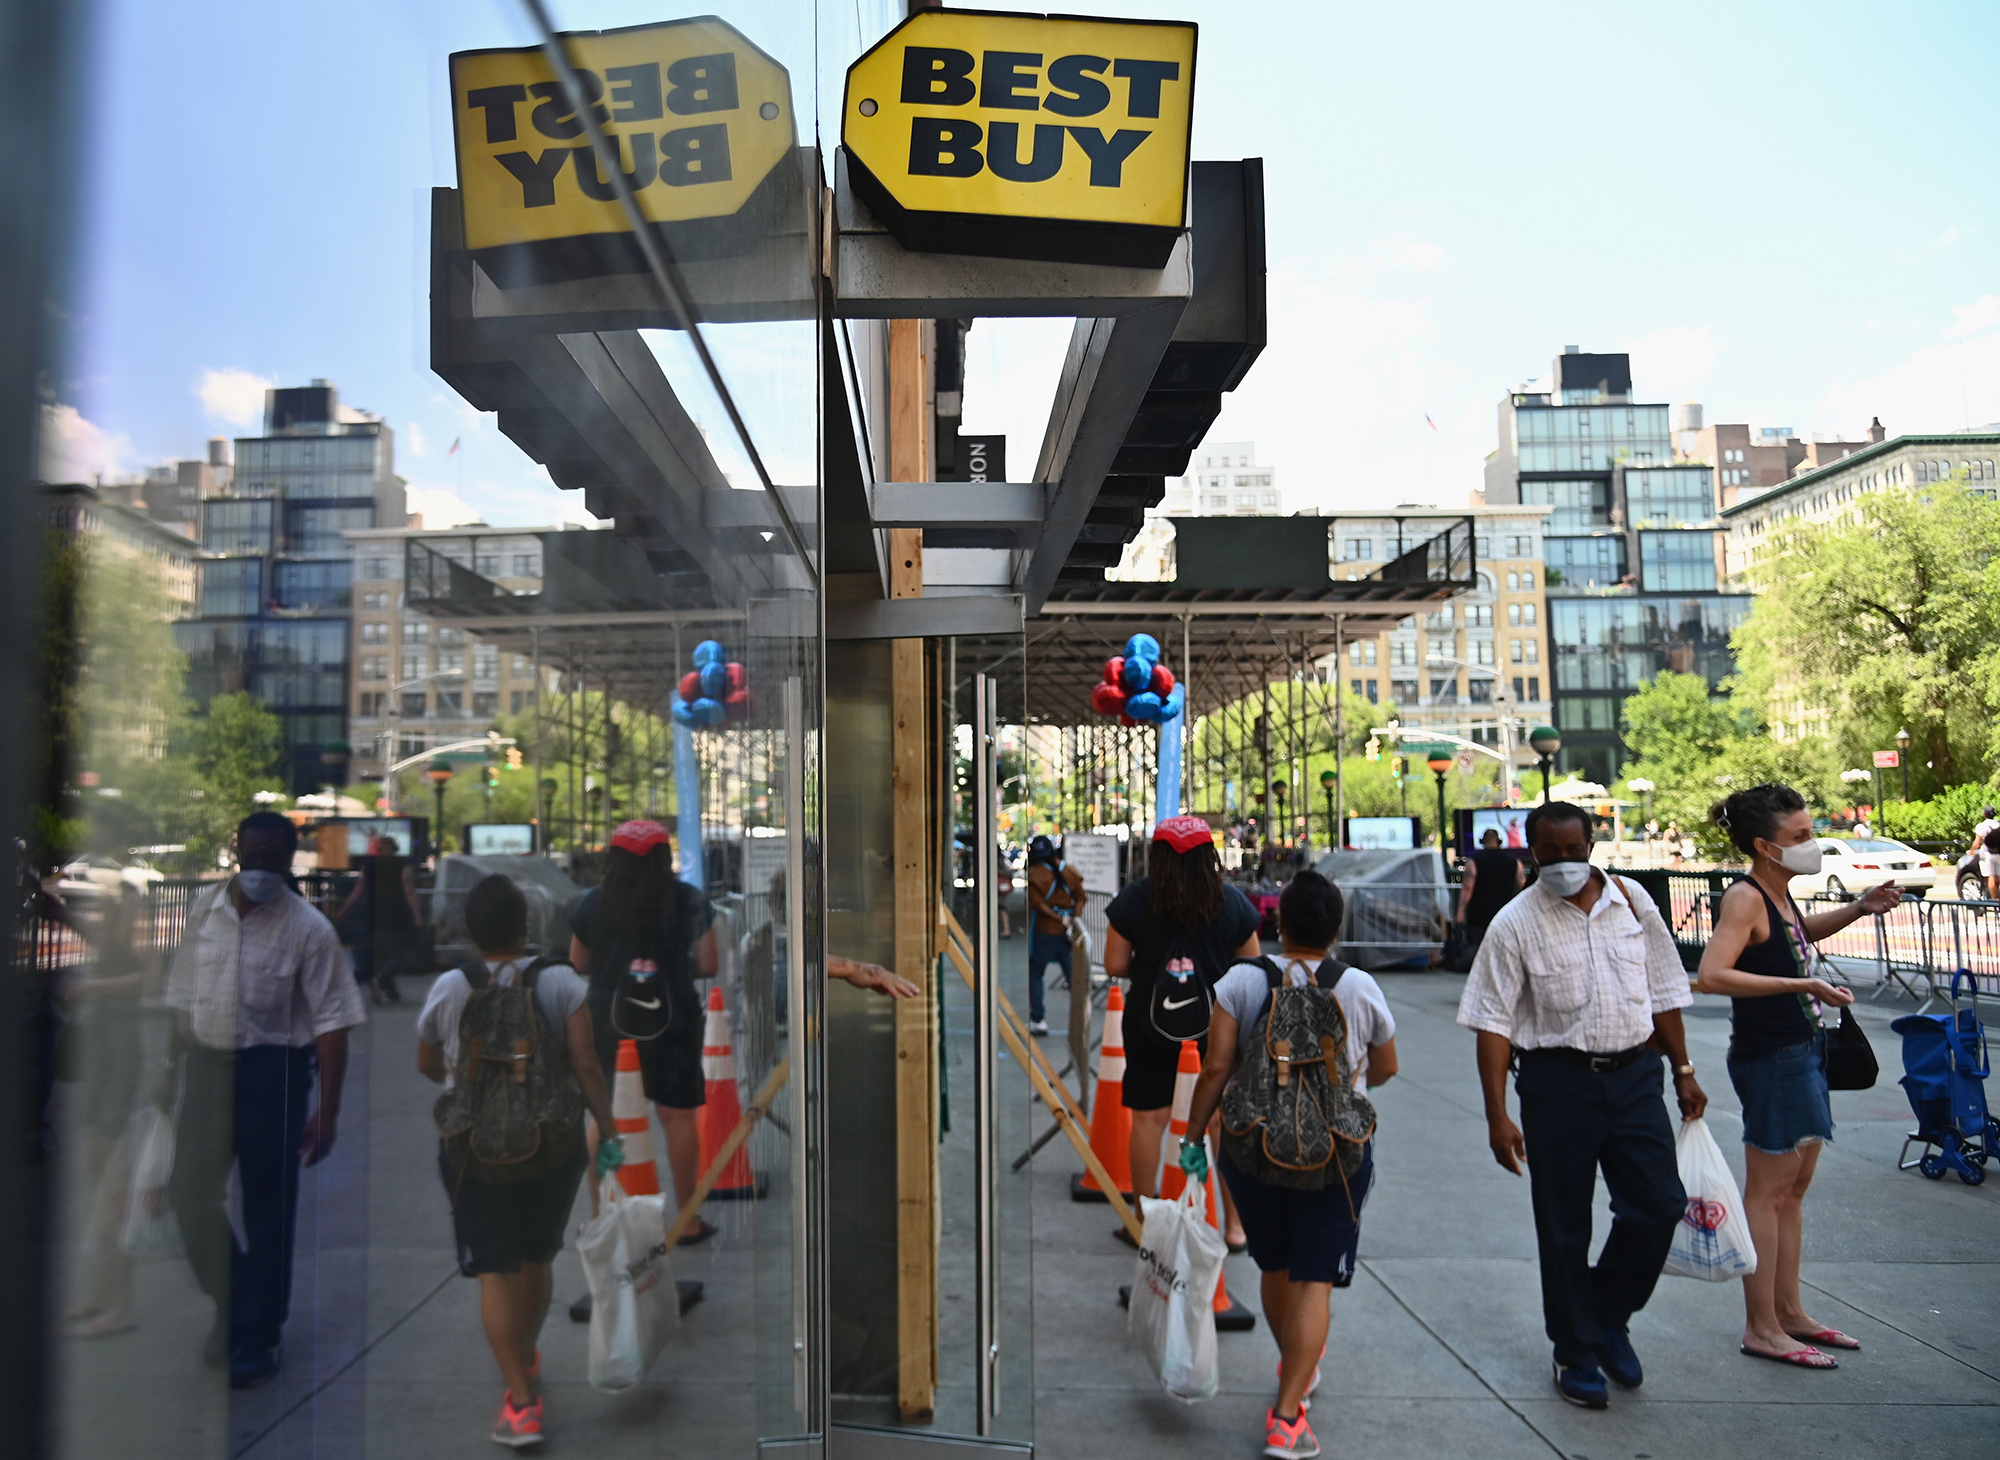 Best Buy will require customers to wear masks in its stores